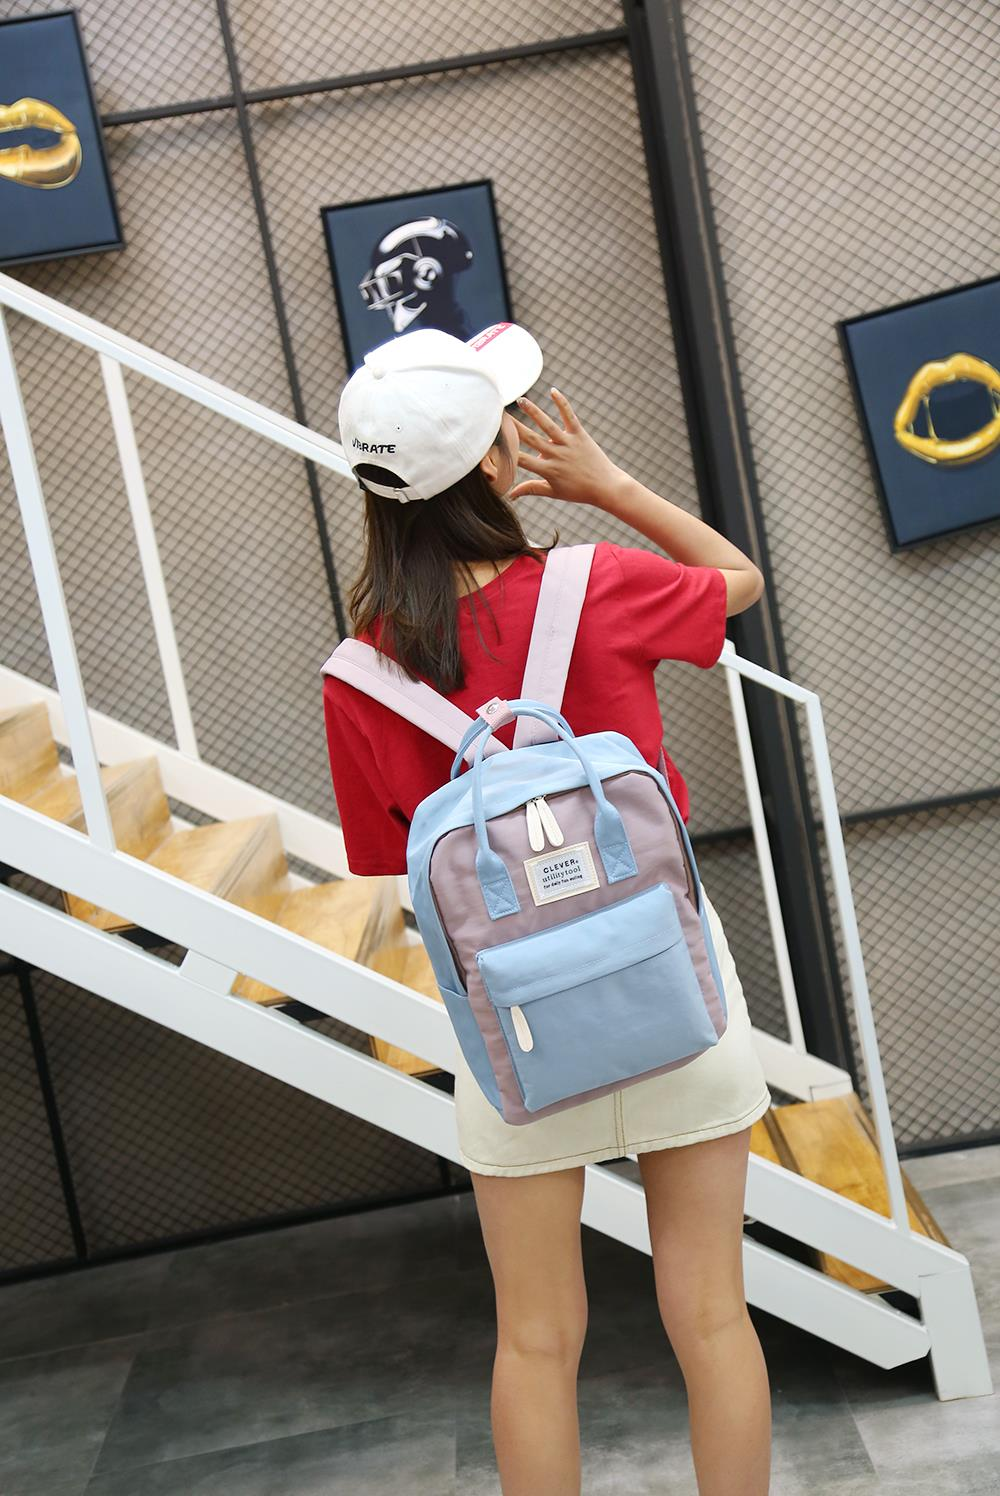 HTB1Q5 JhZuYBuNkSmRyq6AA3pXaJ Multifunction women backpack fashion youth korean style shoulder bag laptop backpack schoolbags for teenager girls boys travel